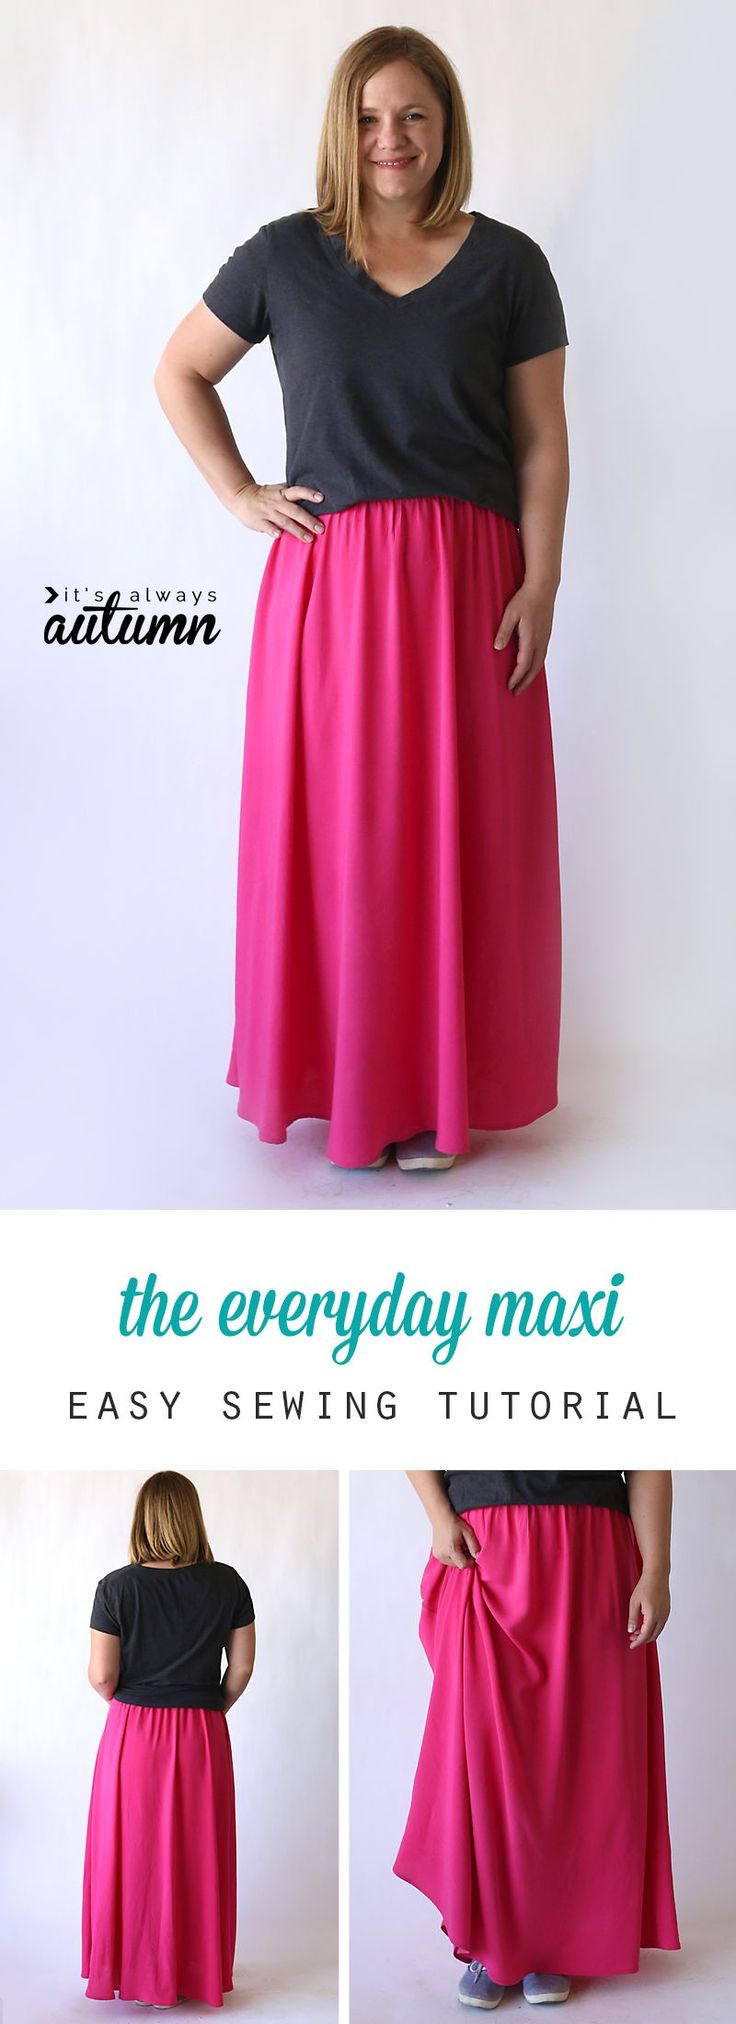 Easy sewing tutorial for a women's maxi skirt made from woven (not knit) fabric. How to sew a maxi skirt.